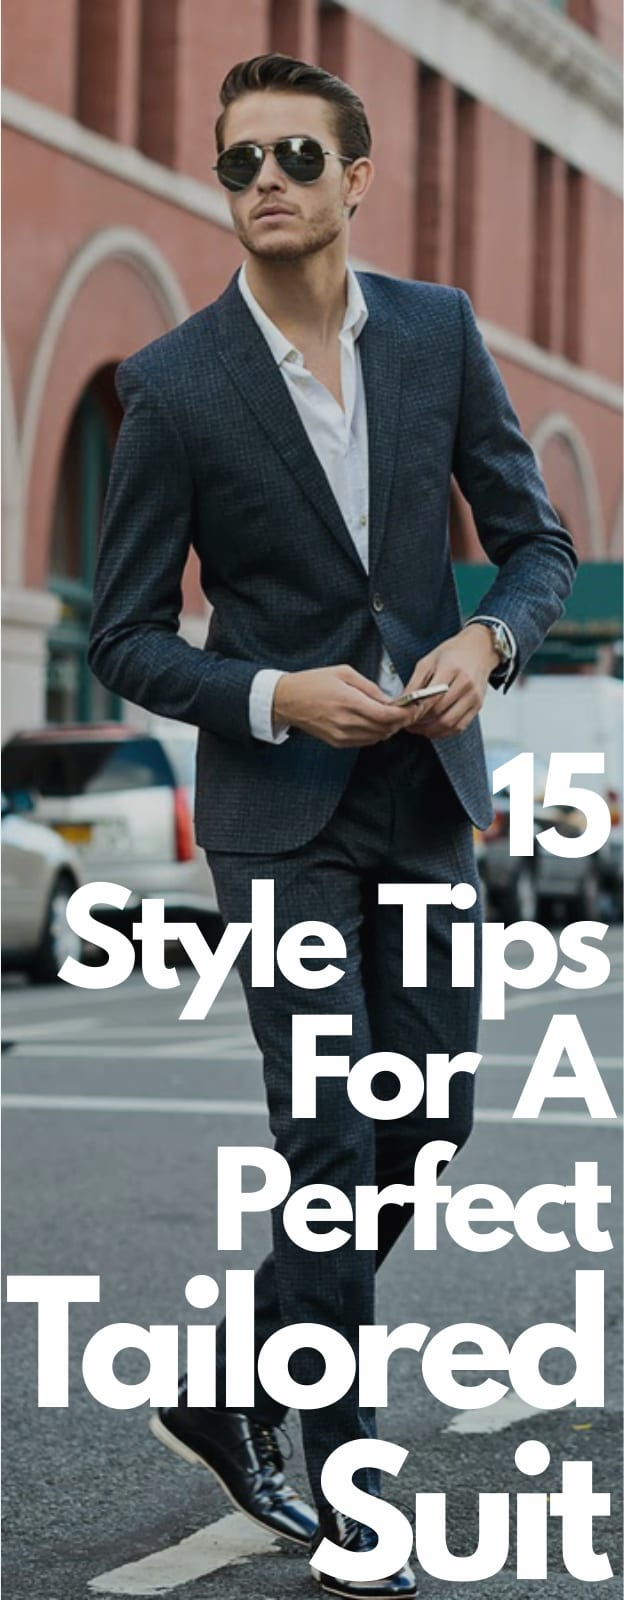 15 Style Tips For A Perfect Tailored Suit